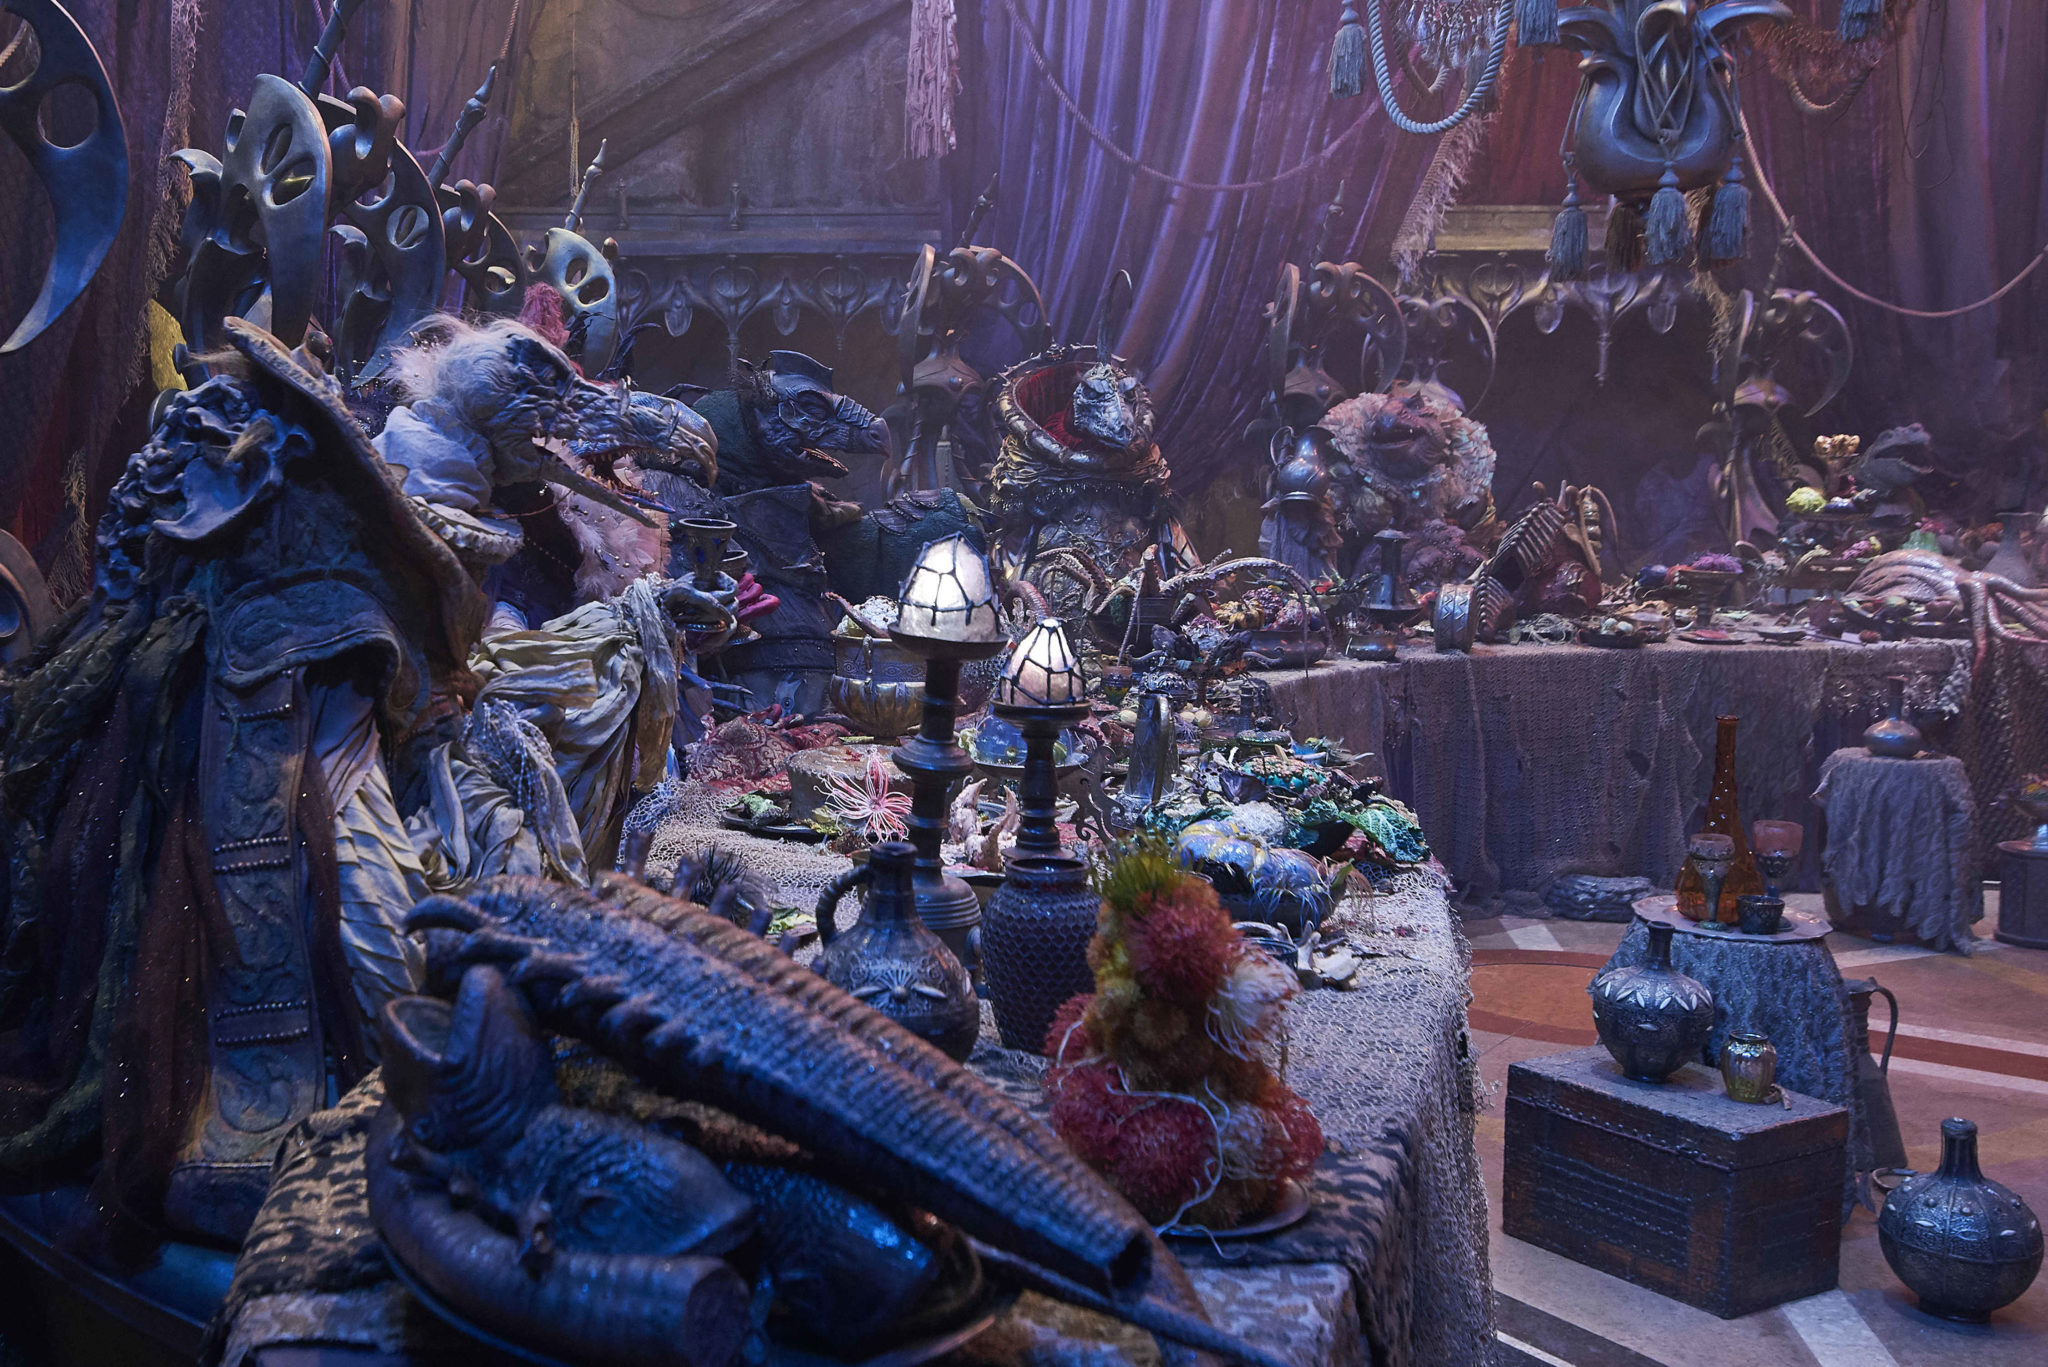 Scene from <i>The Dark Crystal: Age of Resistance</i>